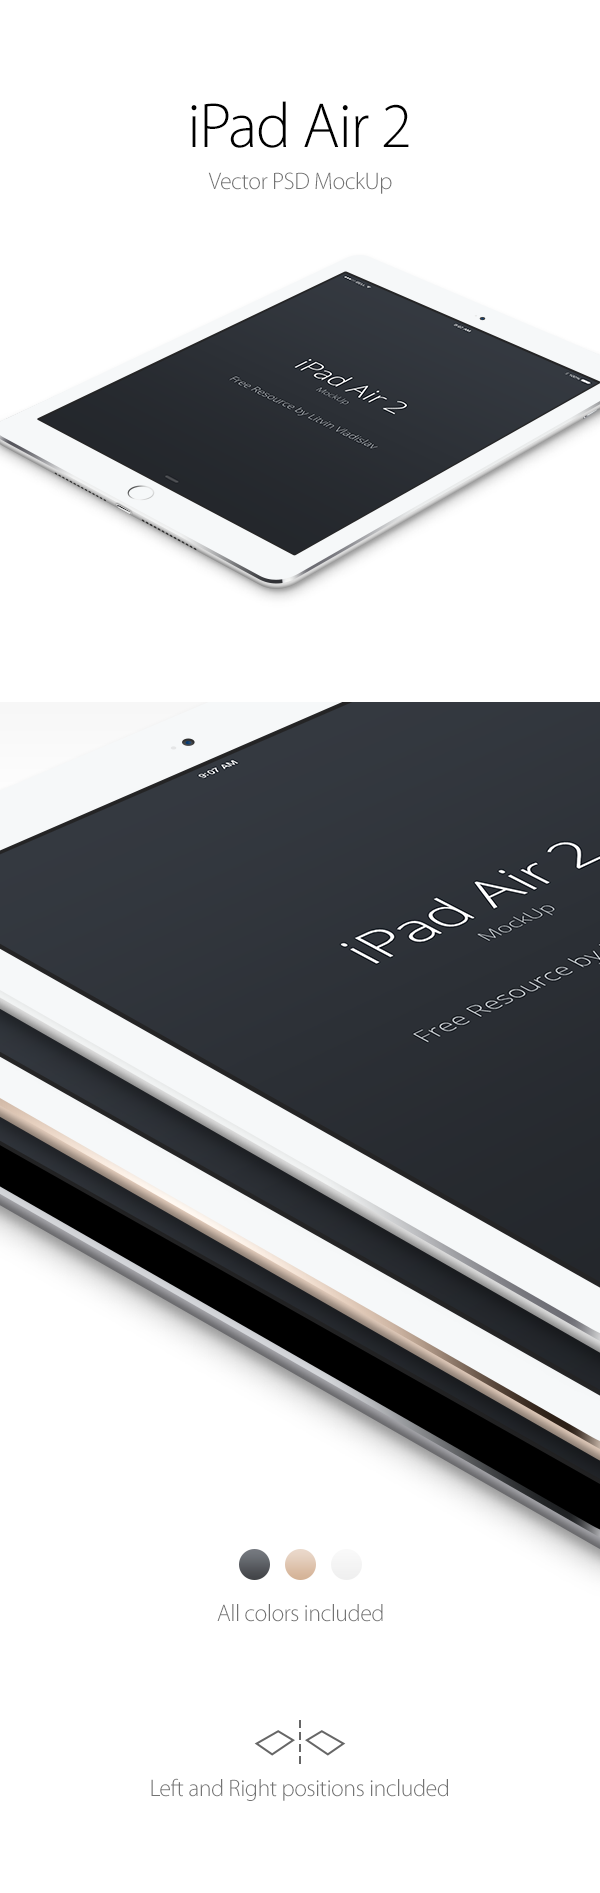 iPad-Air-2-Perspective-MockUp-600